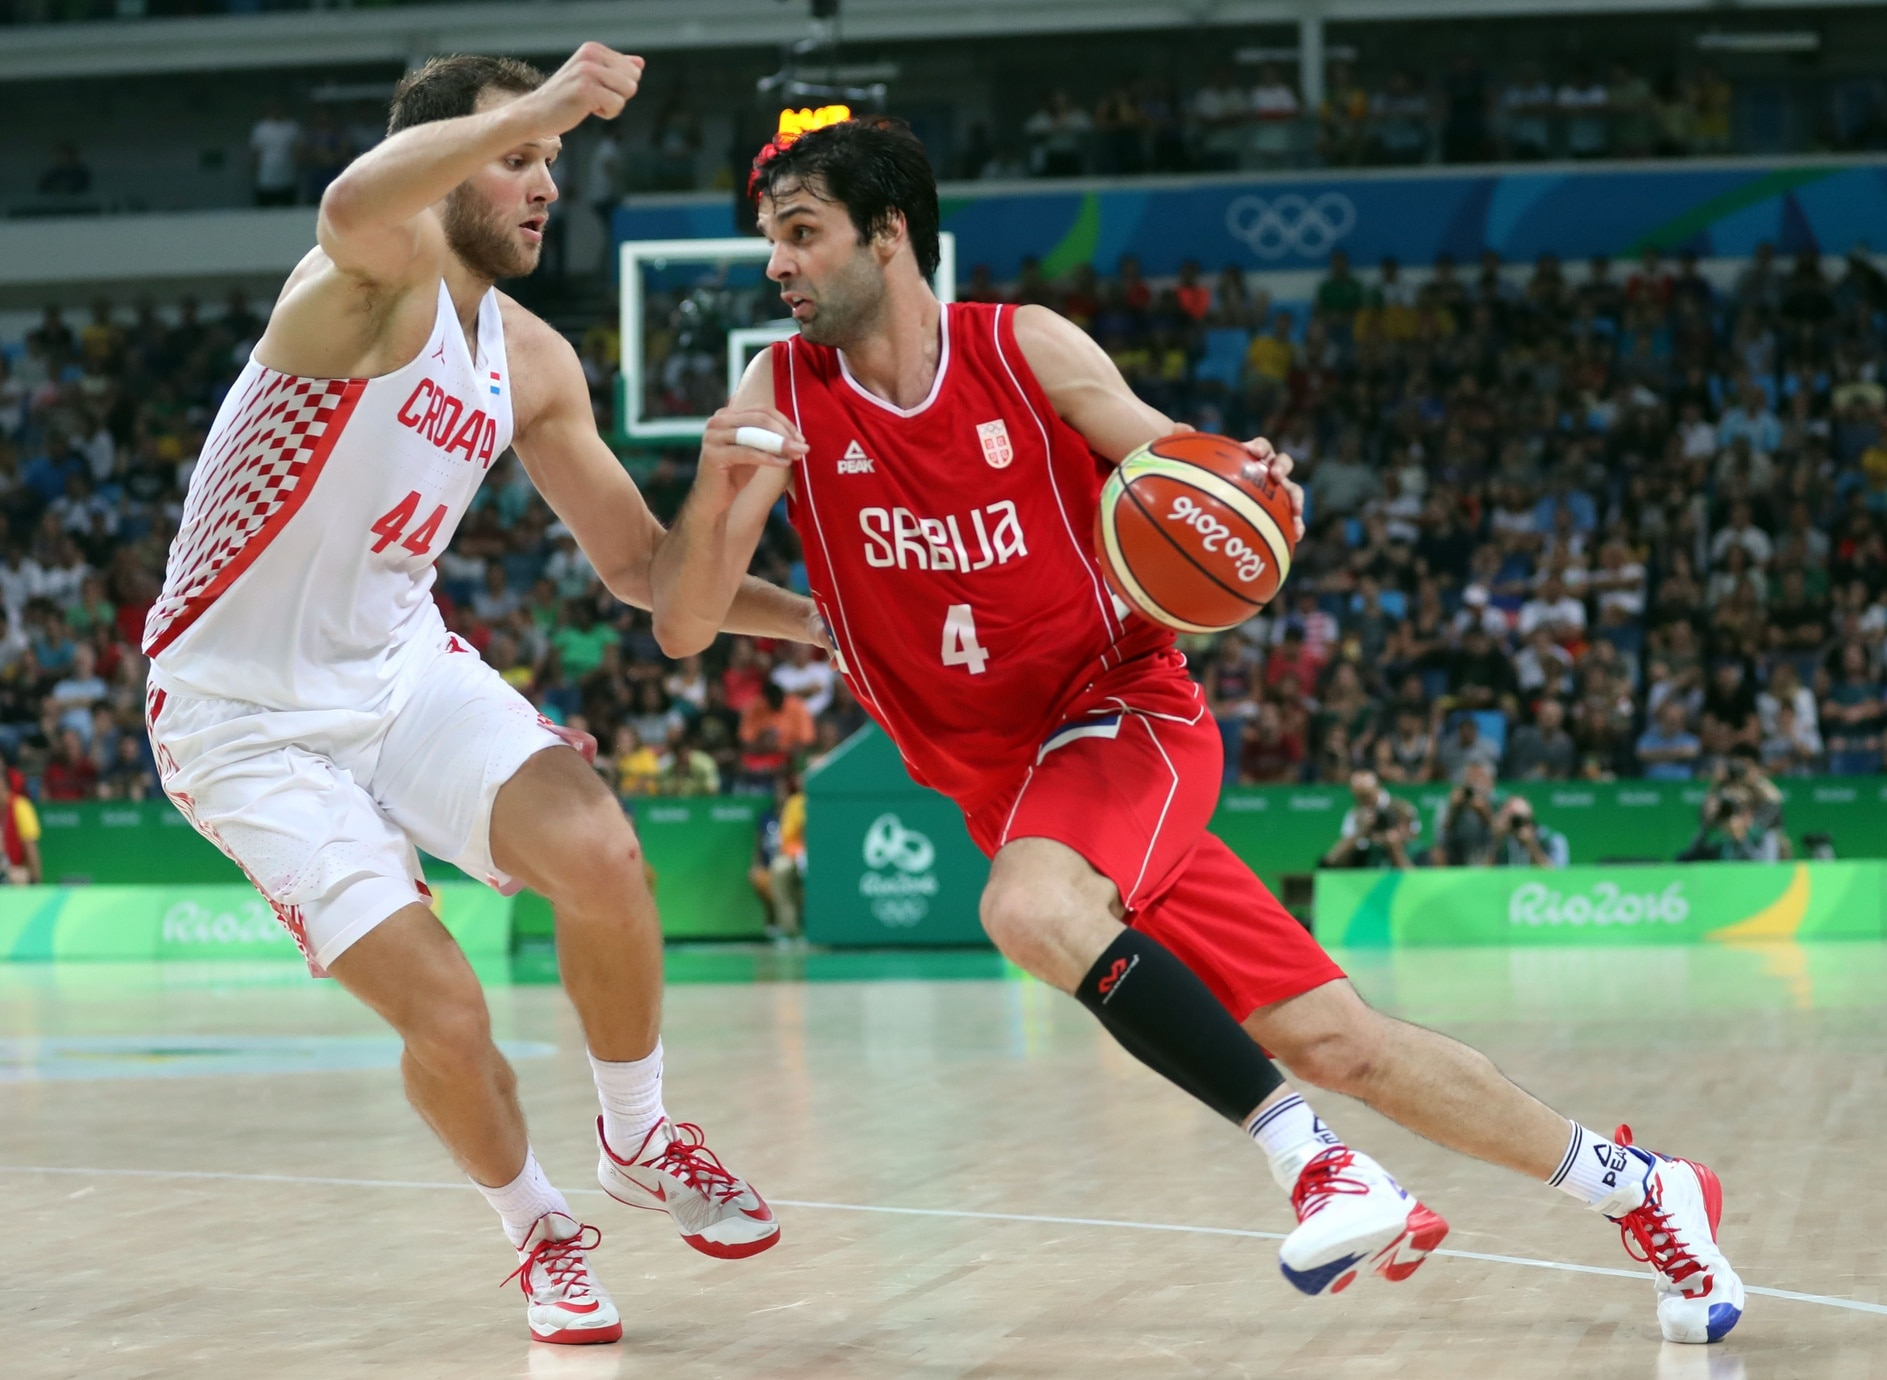 Aug 17, 2016; Rio de Janeiro, Brazil; Serbia point guard Milos Teodosic (4) drives to the basket against Croatia shooting guard Bojan Bogdanovic (44) during the men's basketball quarterfinals in the Rio 2016 Summer Olympic Games at Carioca Arena 1. Mandatory Credit: Jeff Swinger-USA TODAY Sports